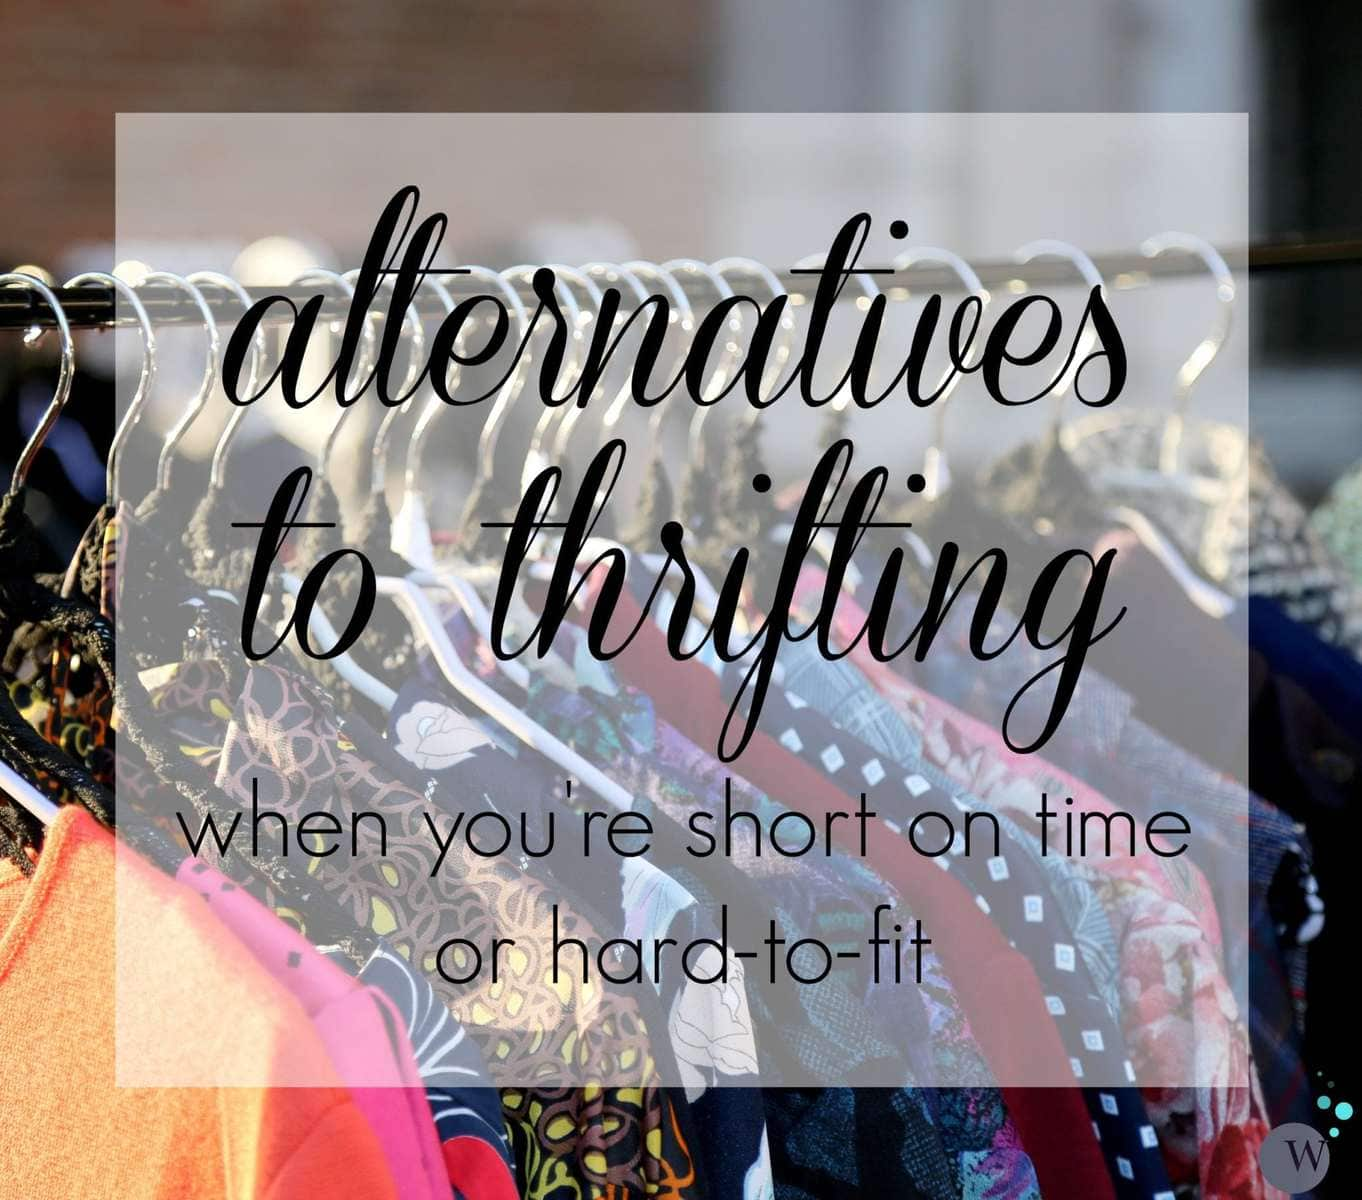 Alternatives to Thrifting: How to find used and vintage clothing when you're short on time and/or a hard to fit size